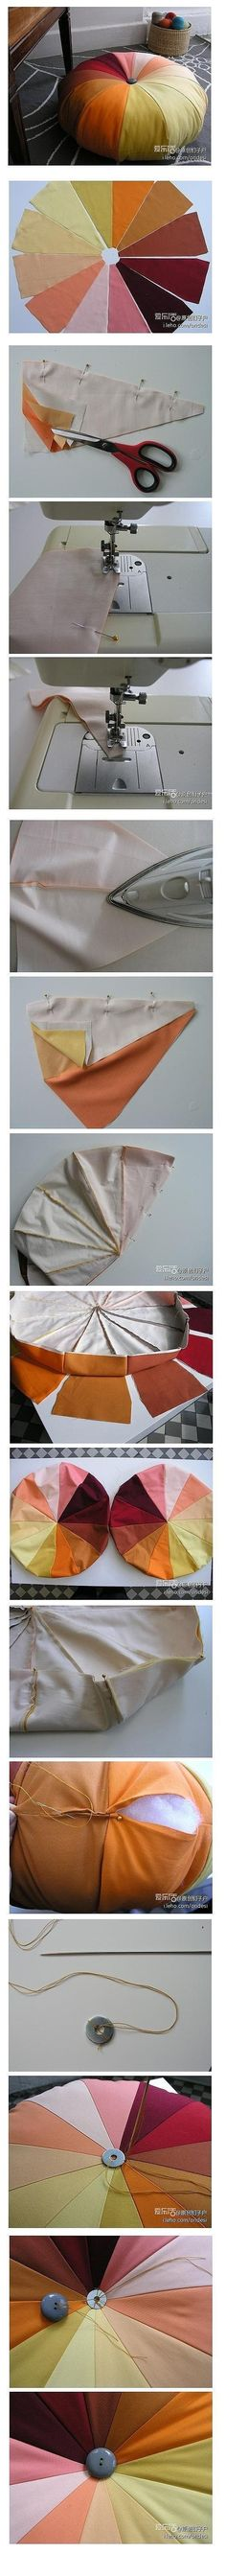 DIY cute cushion - to make a pumpkin cushion http://www.normandeauwc.com